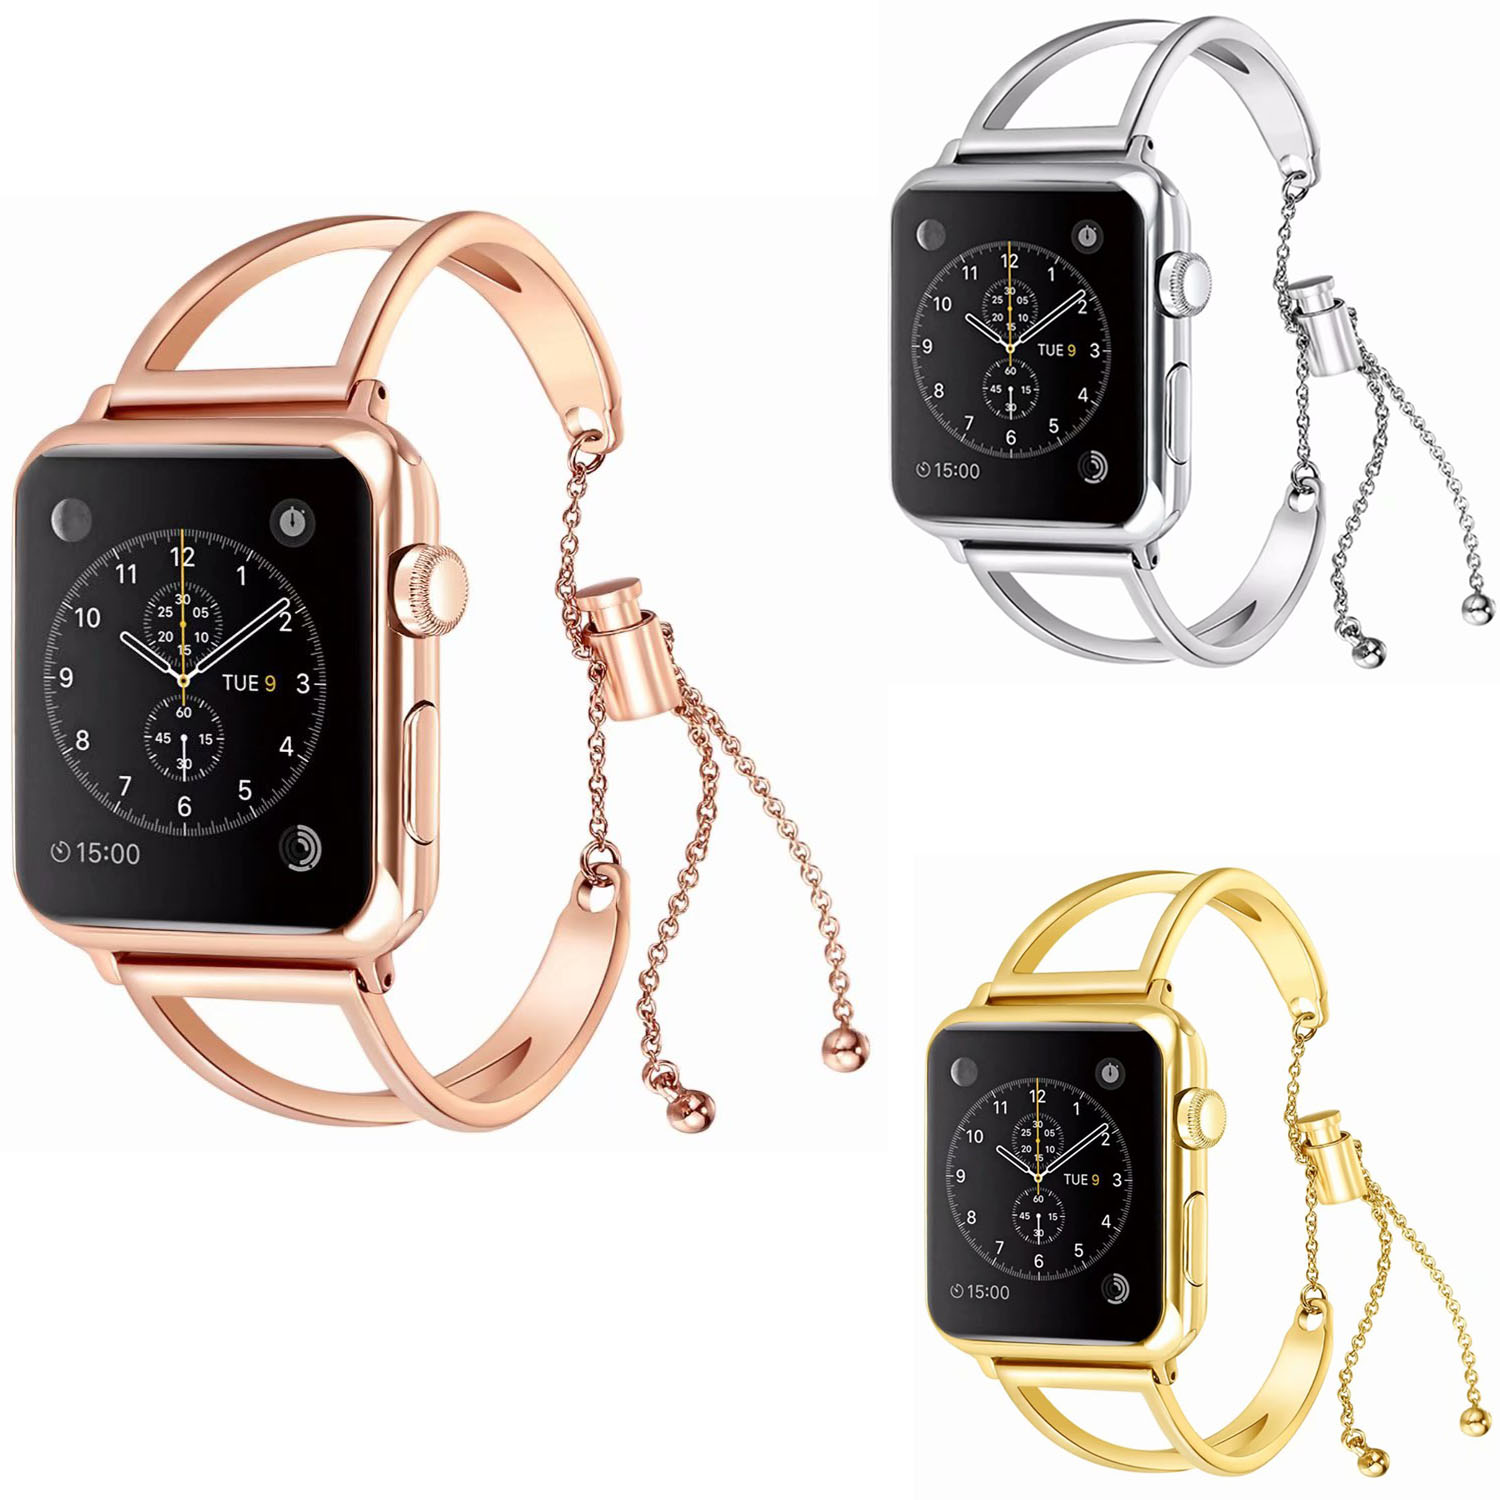 Mujeres reloj pulsera para Apple Watch bandas 38mm 42mm ajustable correa de acero inoxidable con colgante para la serie iWatch 3 2 1